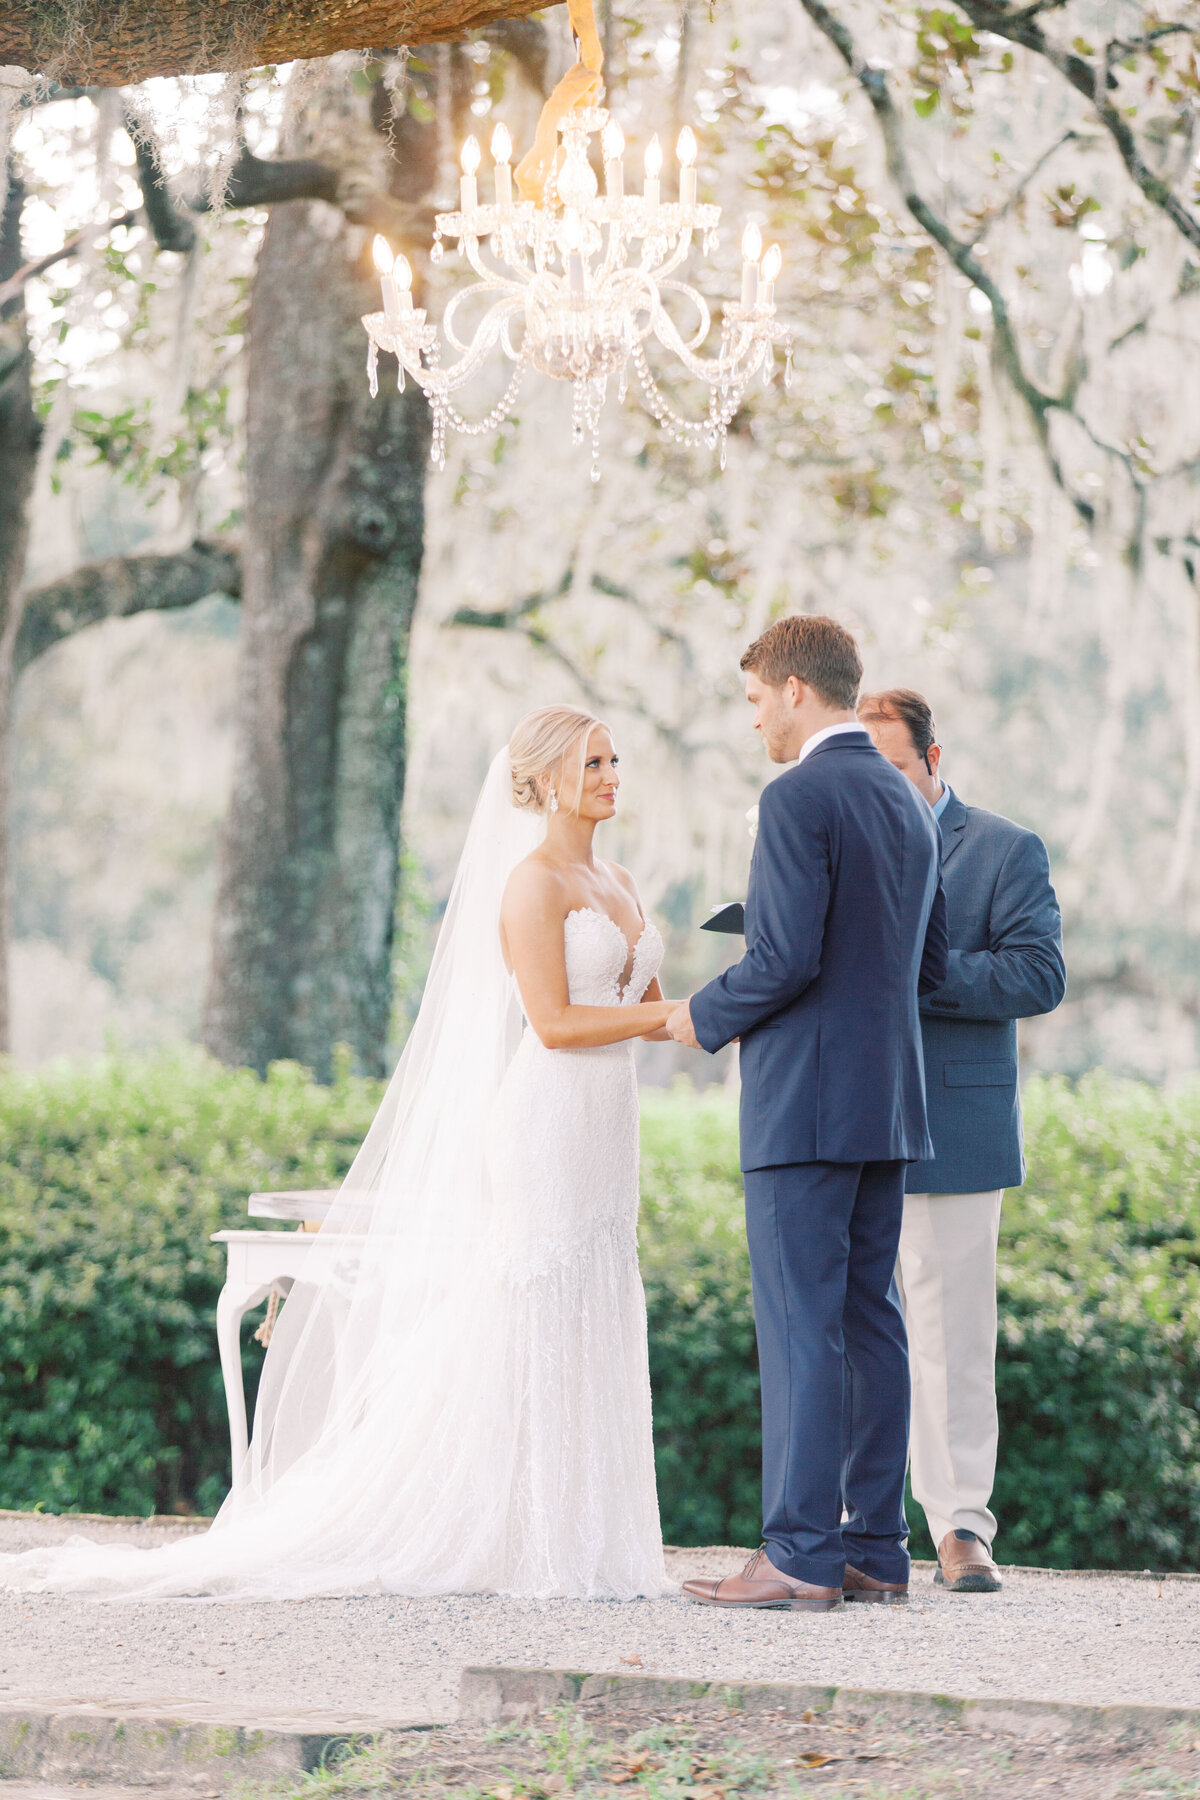 Melton_Wedding__Middleton_Place_Plantation_Charleston_South_Carolina_Jacksonville_Florida_Devon_Donnahoo_Photography__0639